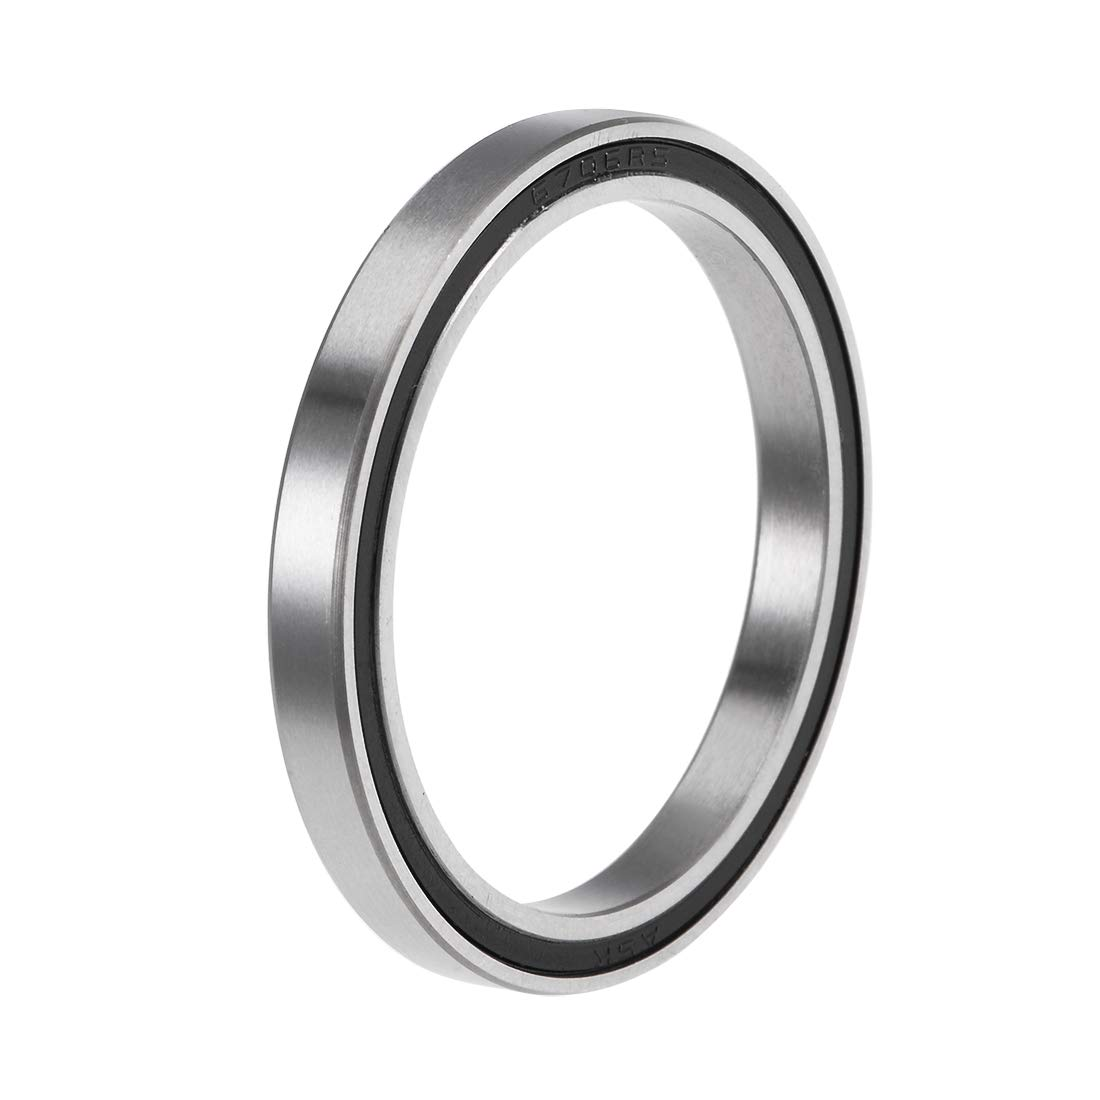 uxcell 6706-2RS Deep Groove Ball Bearings Z2 30mm x 37mm x 4mm Double Sealed Chrome Steel